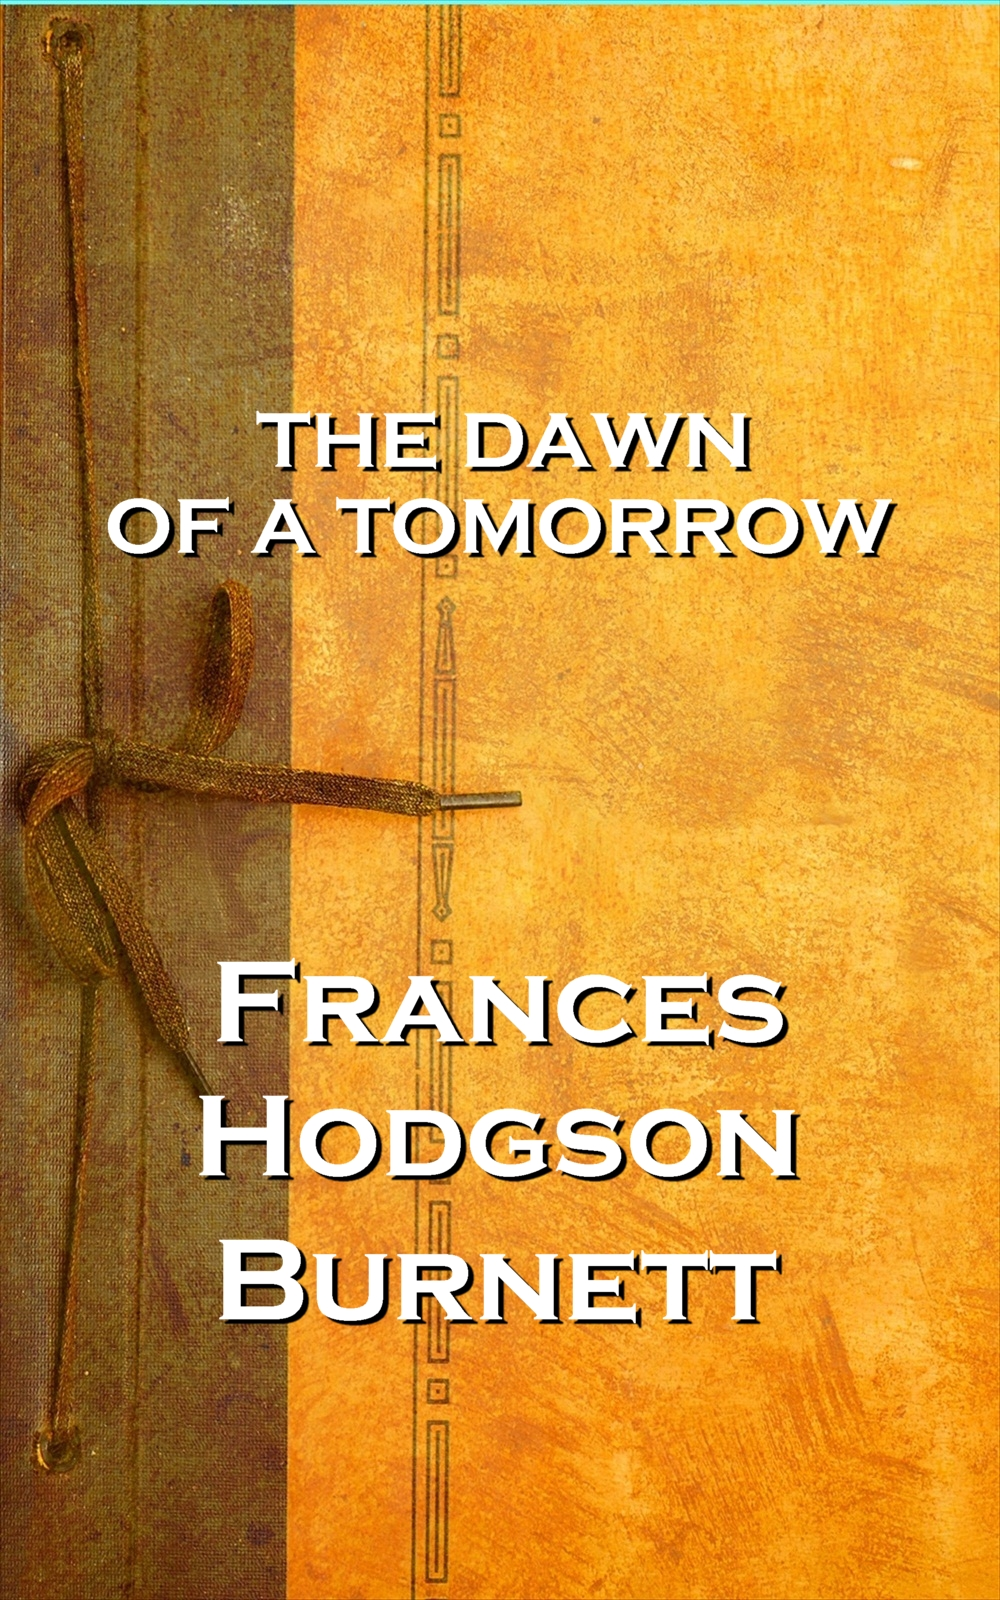 The Dawn Of A Tomorrow, Frances Hodgson Burnett